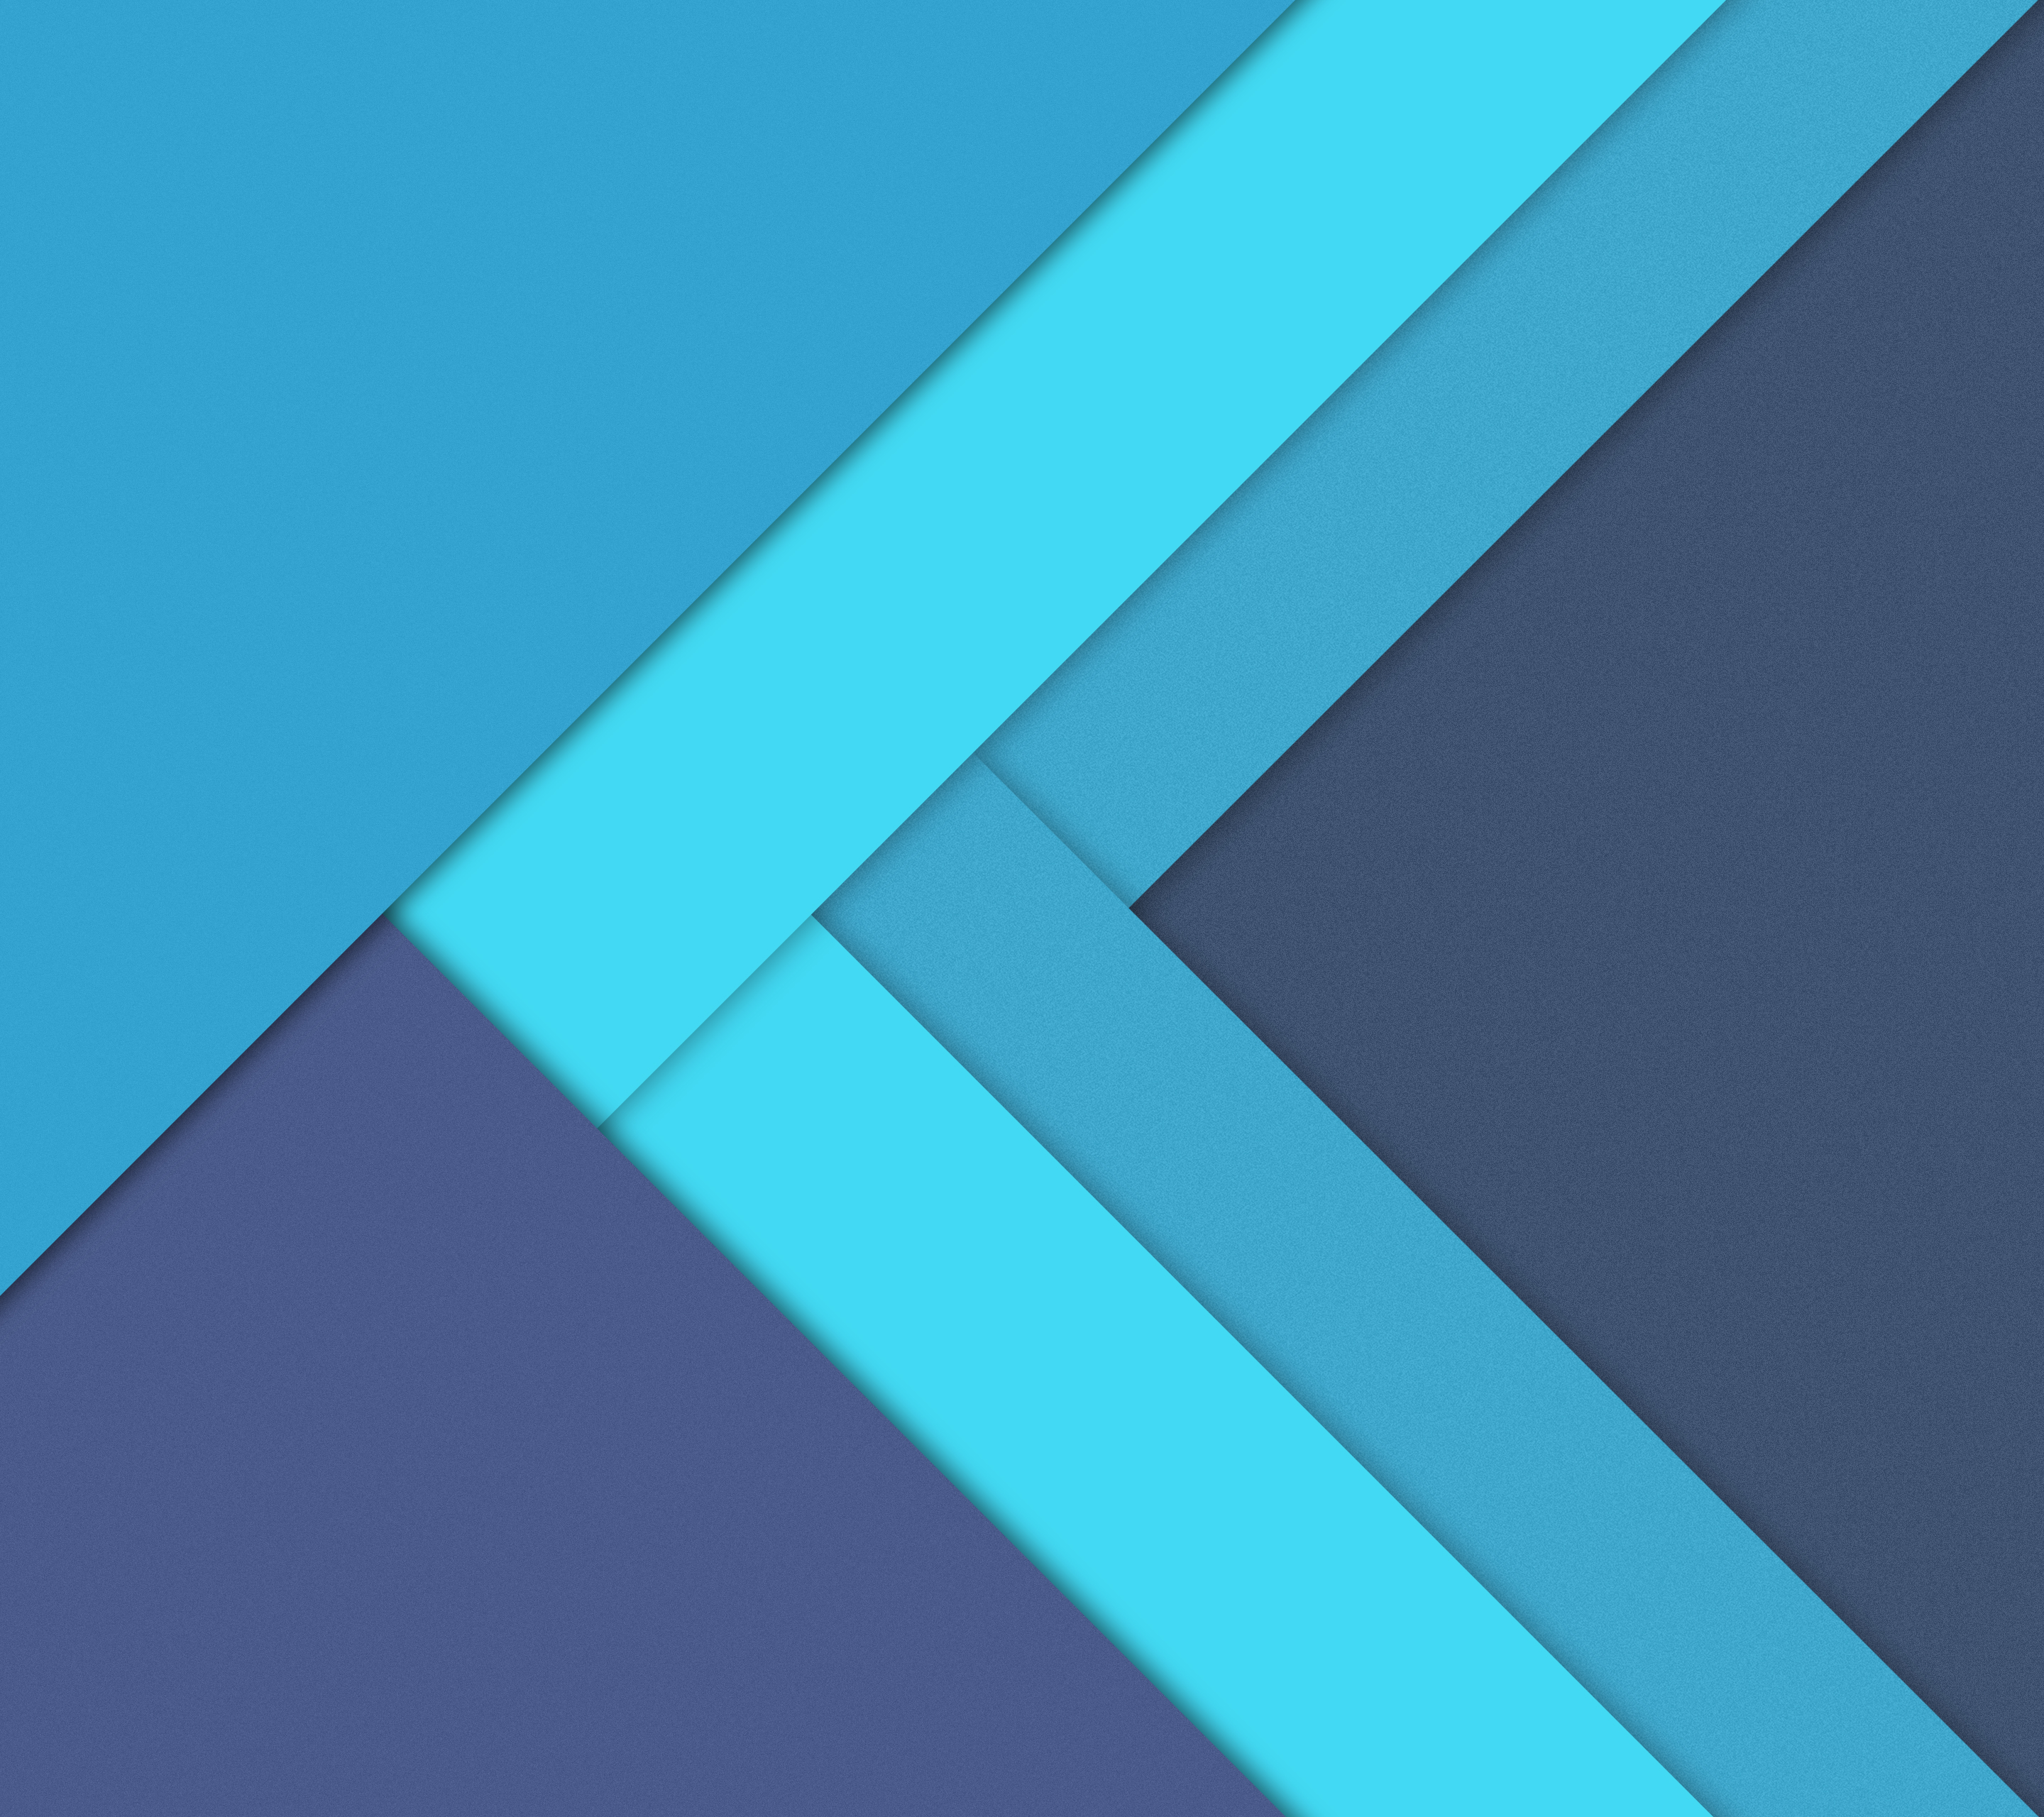 Material Design 2, HD Abstract, 4k Wallpapers, Images